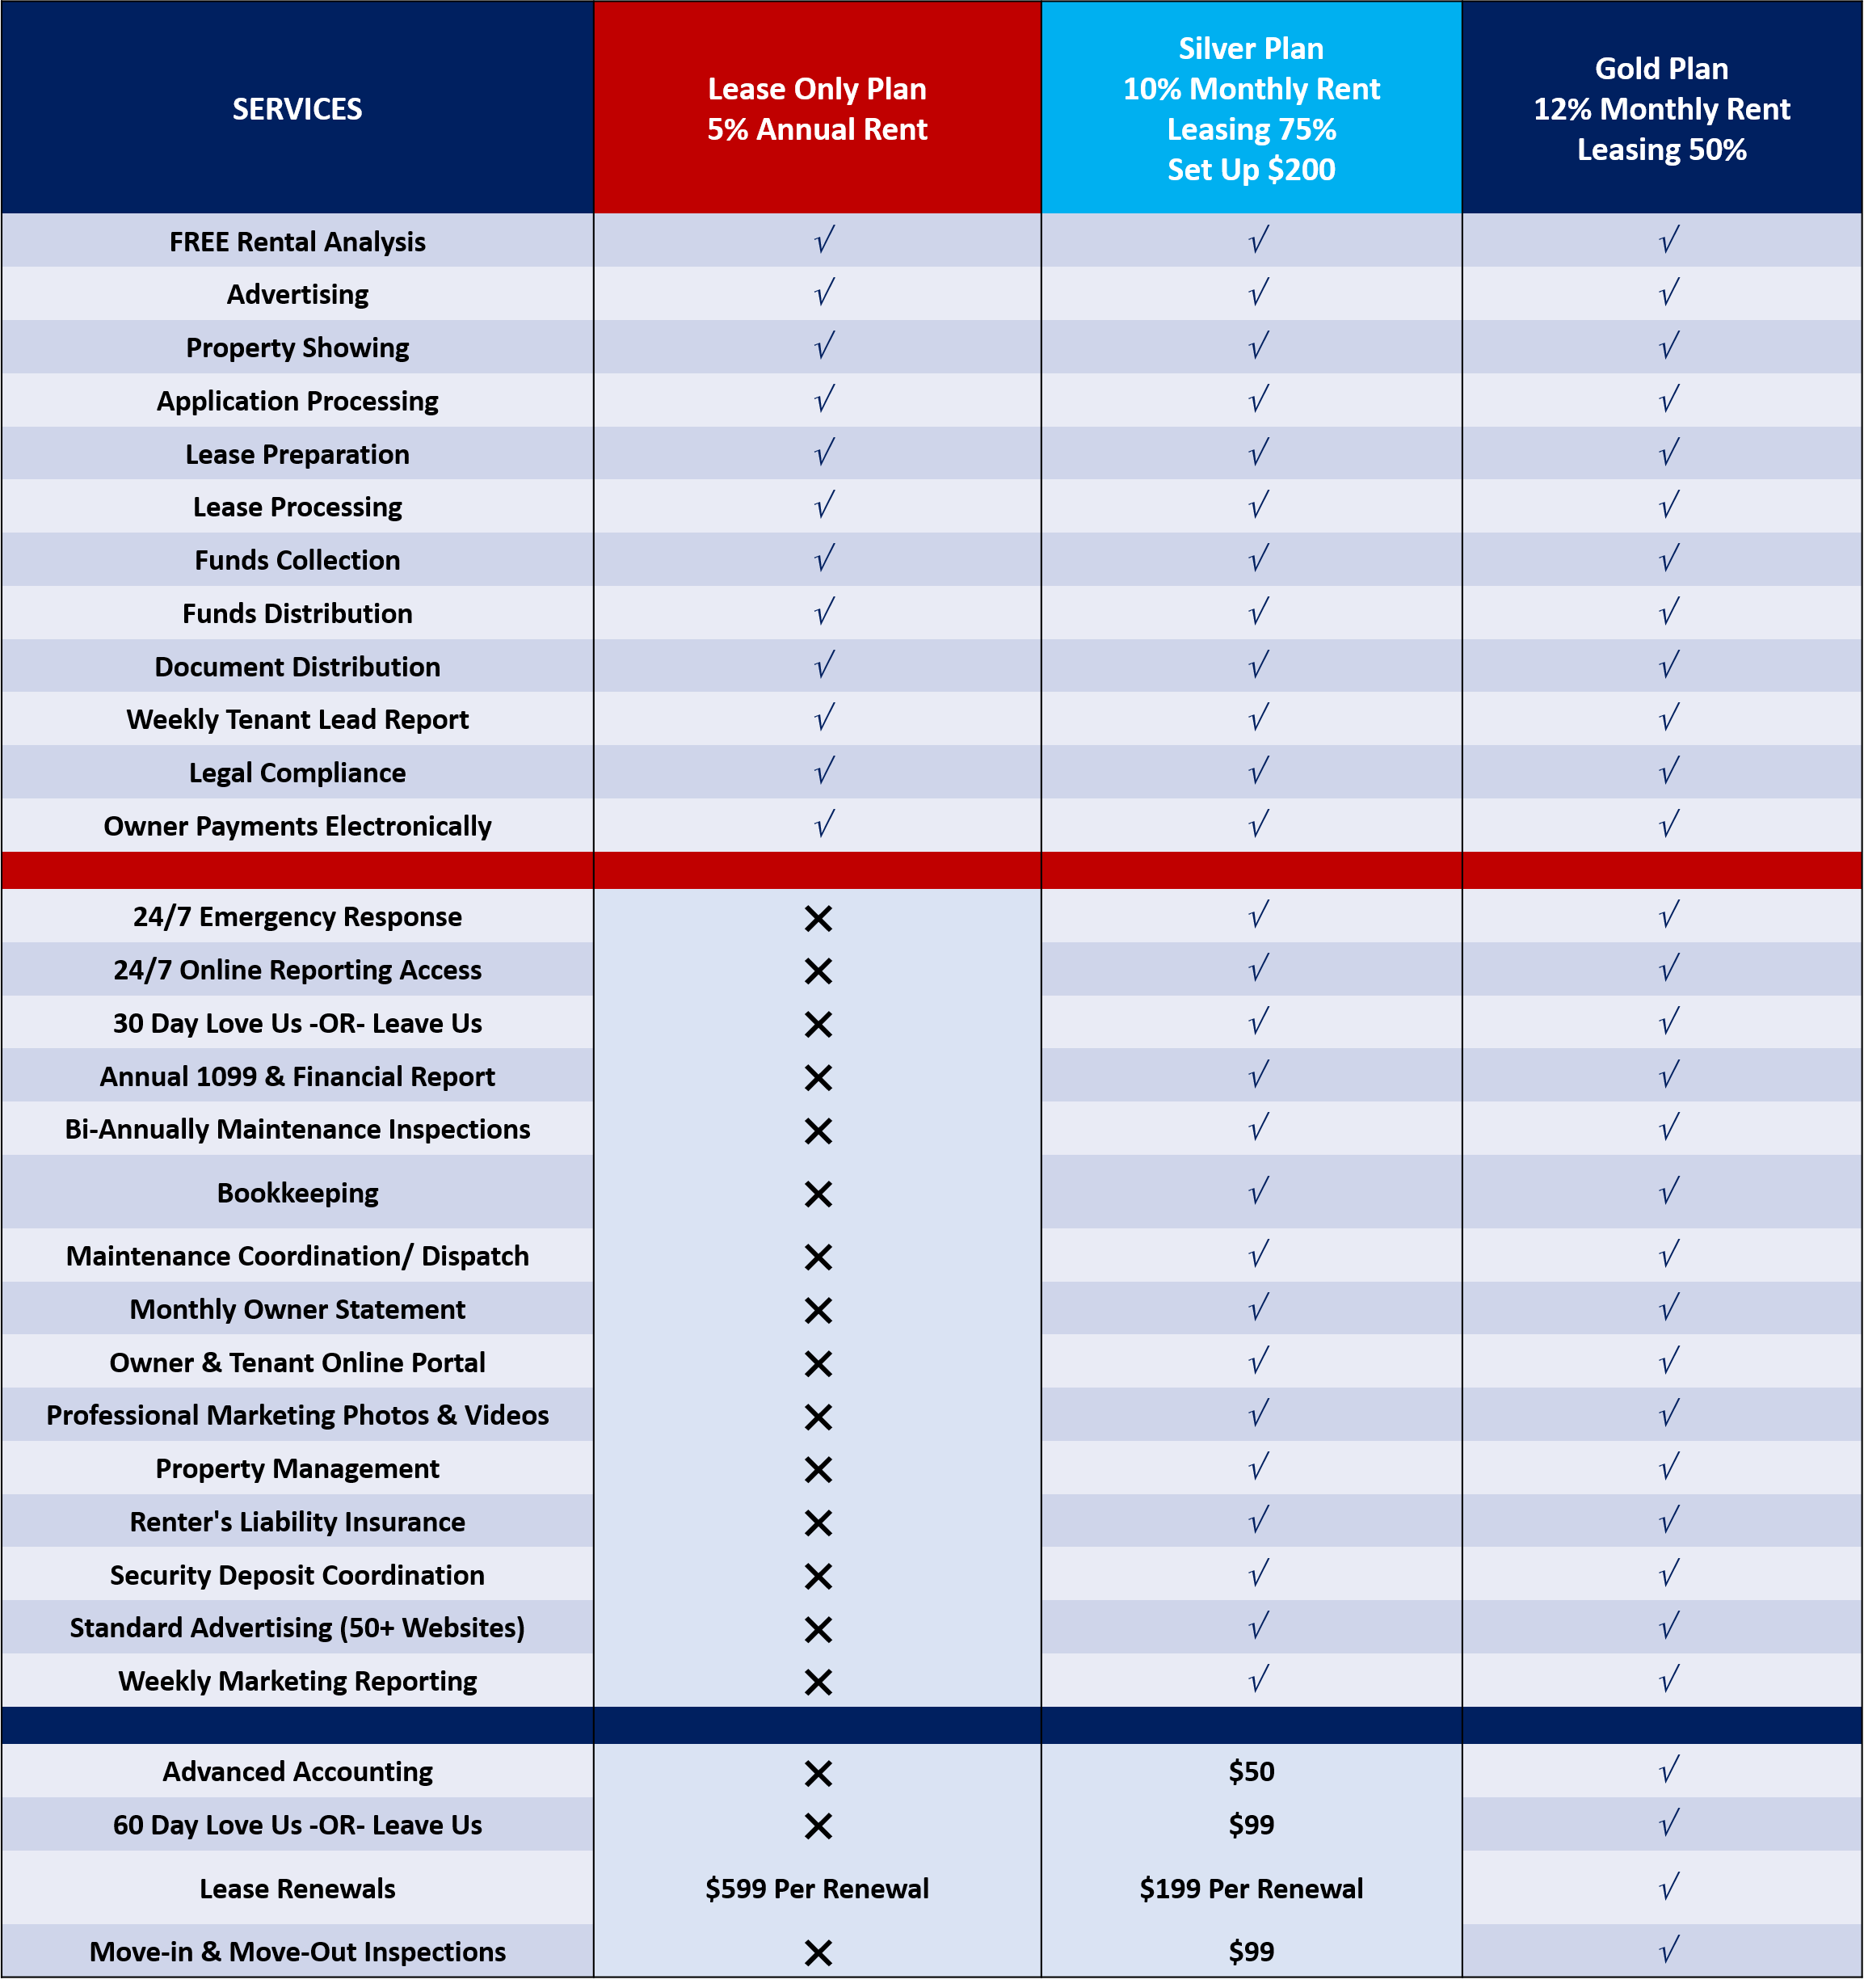 Real Property Management Family Pricing Table